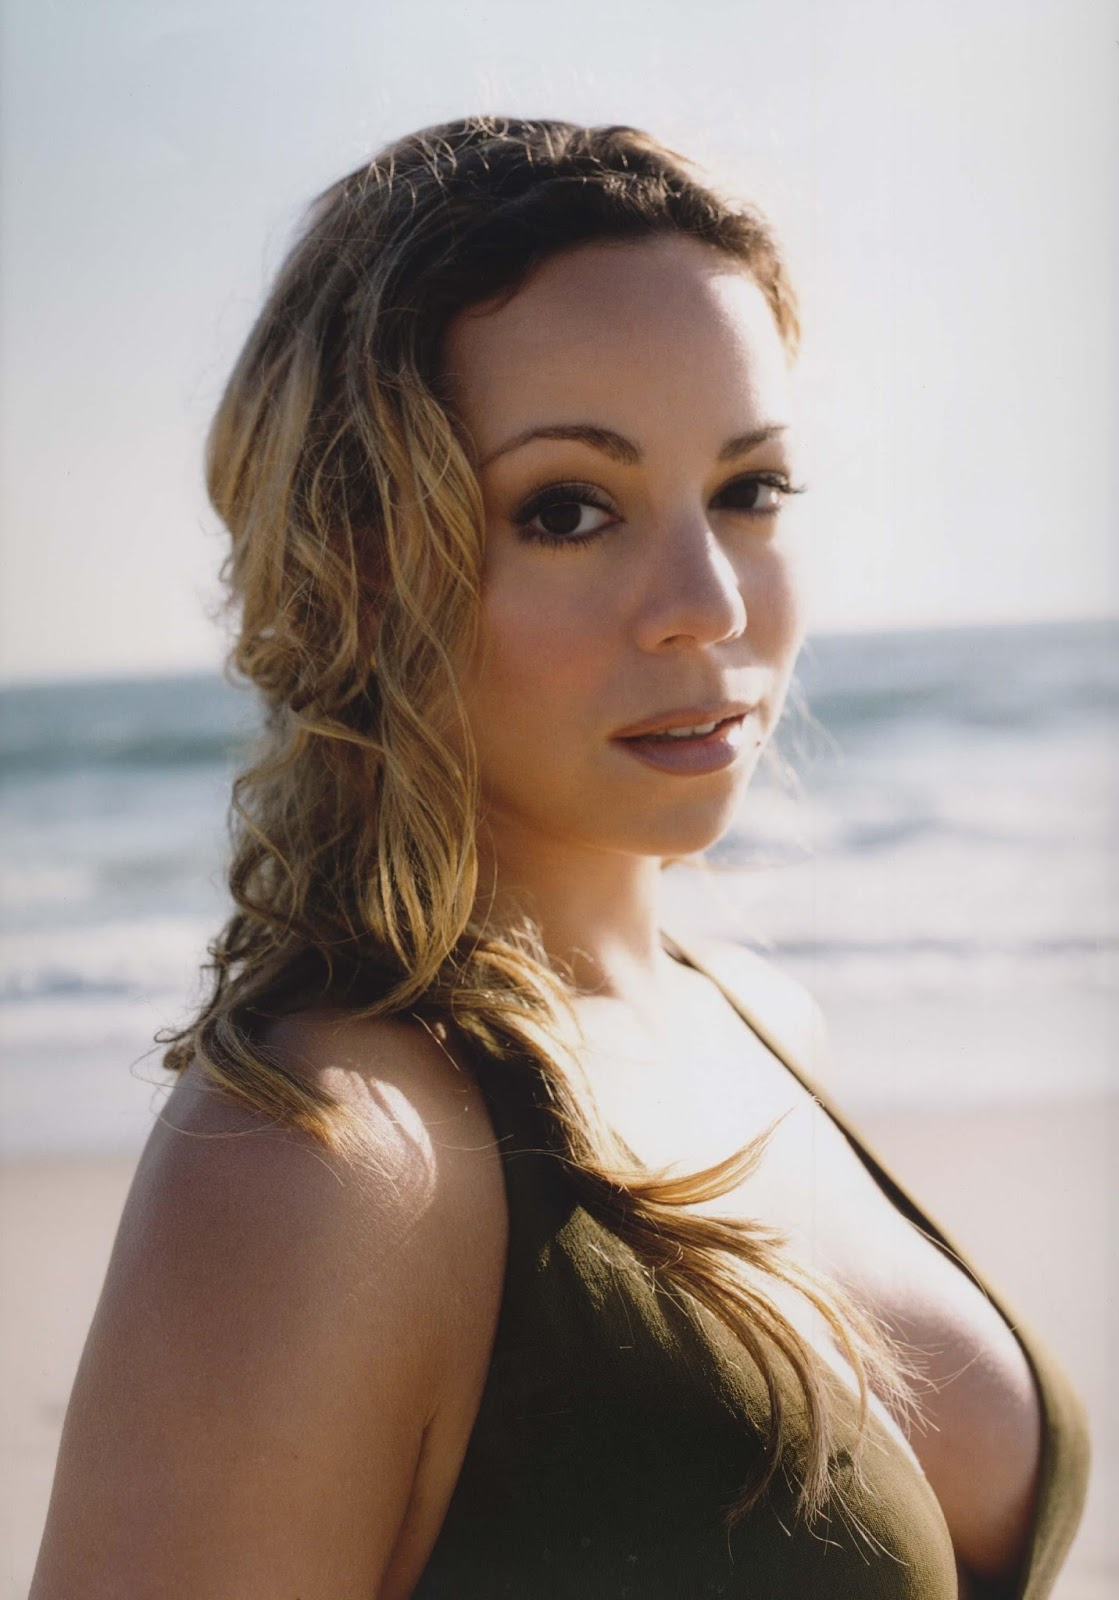 News Center: Mariah Carey Biography In Different Way